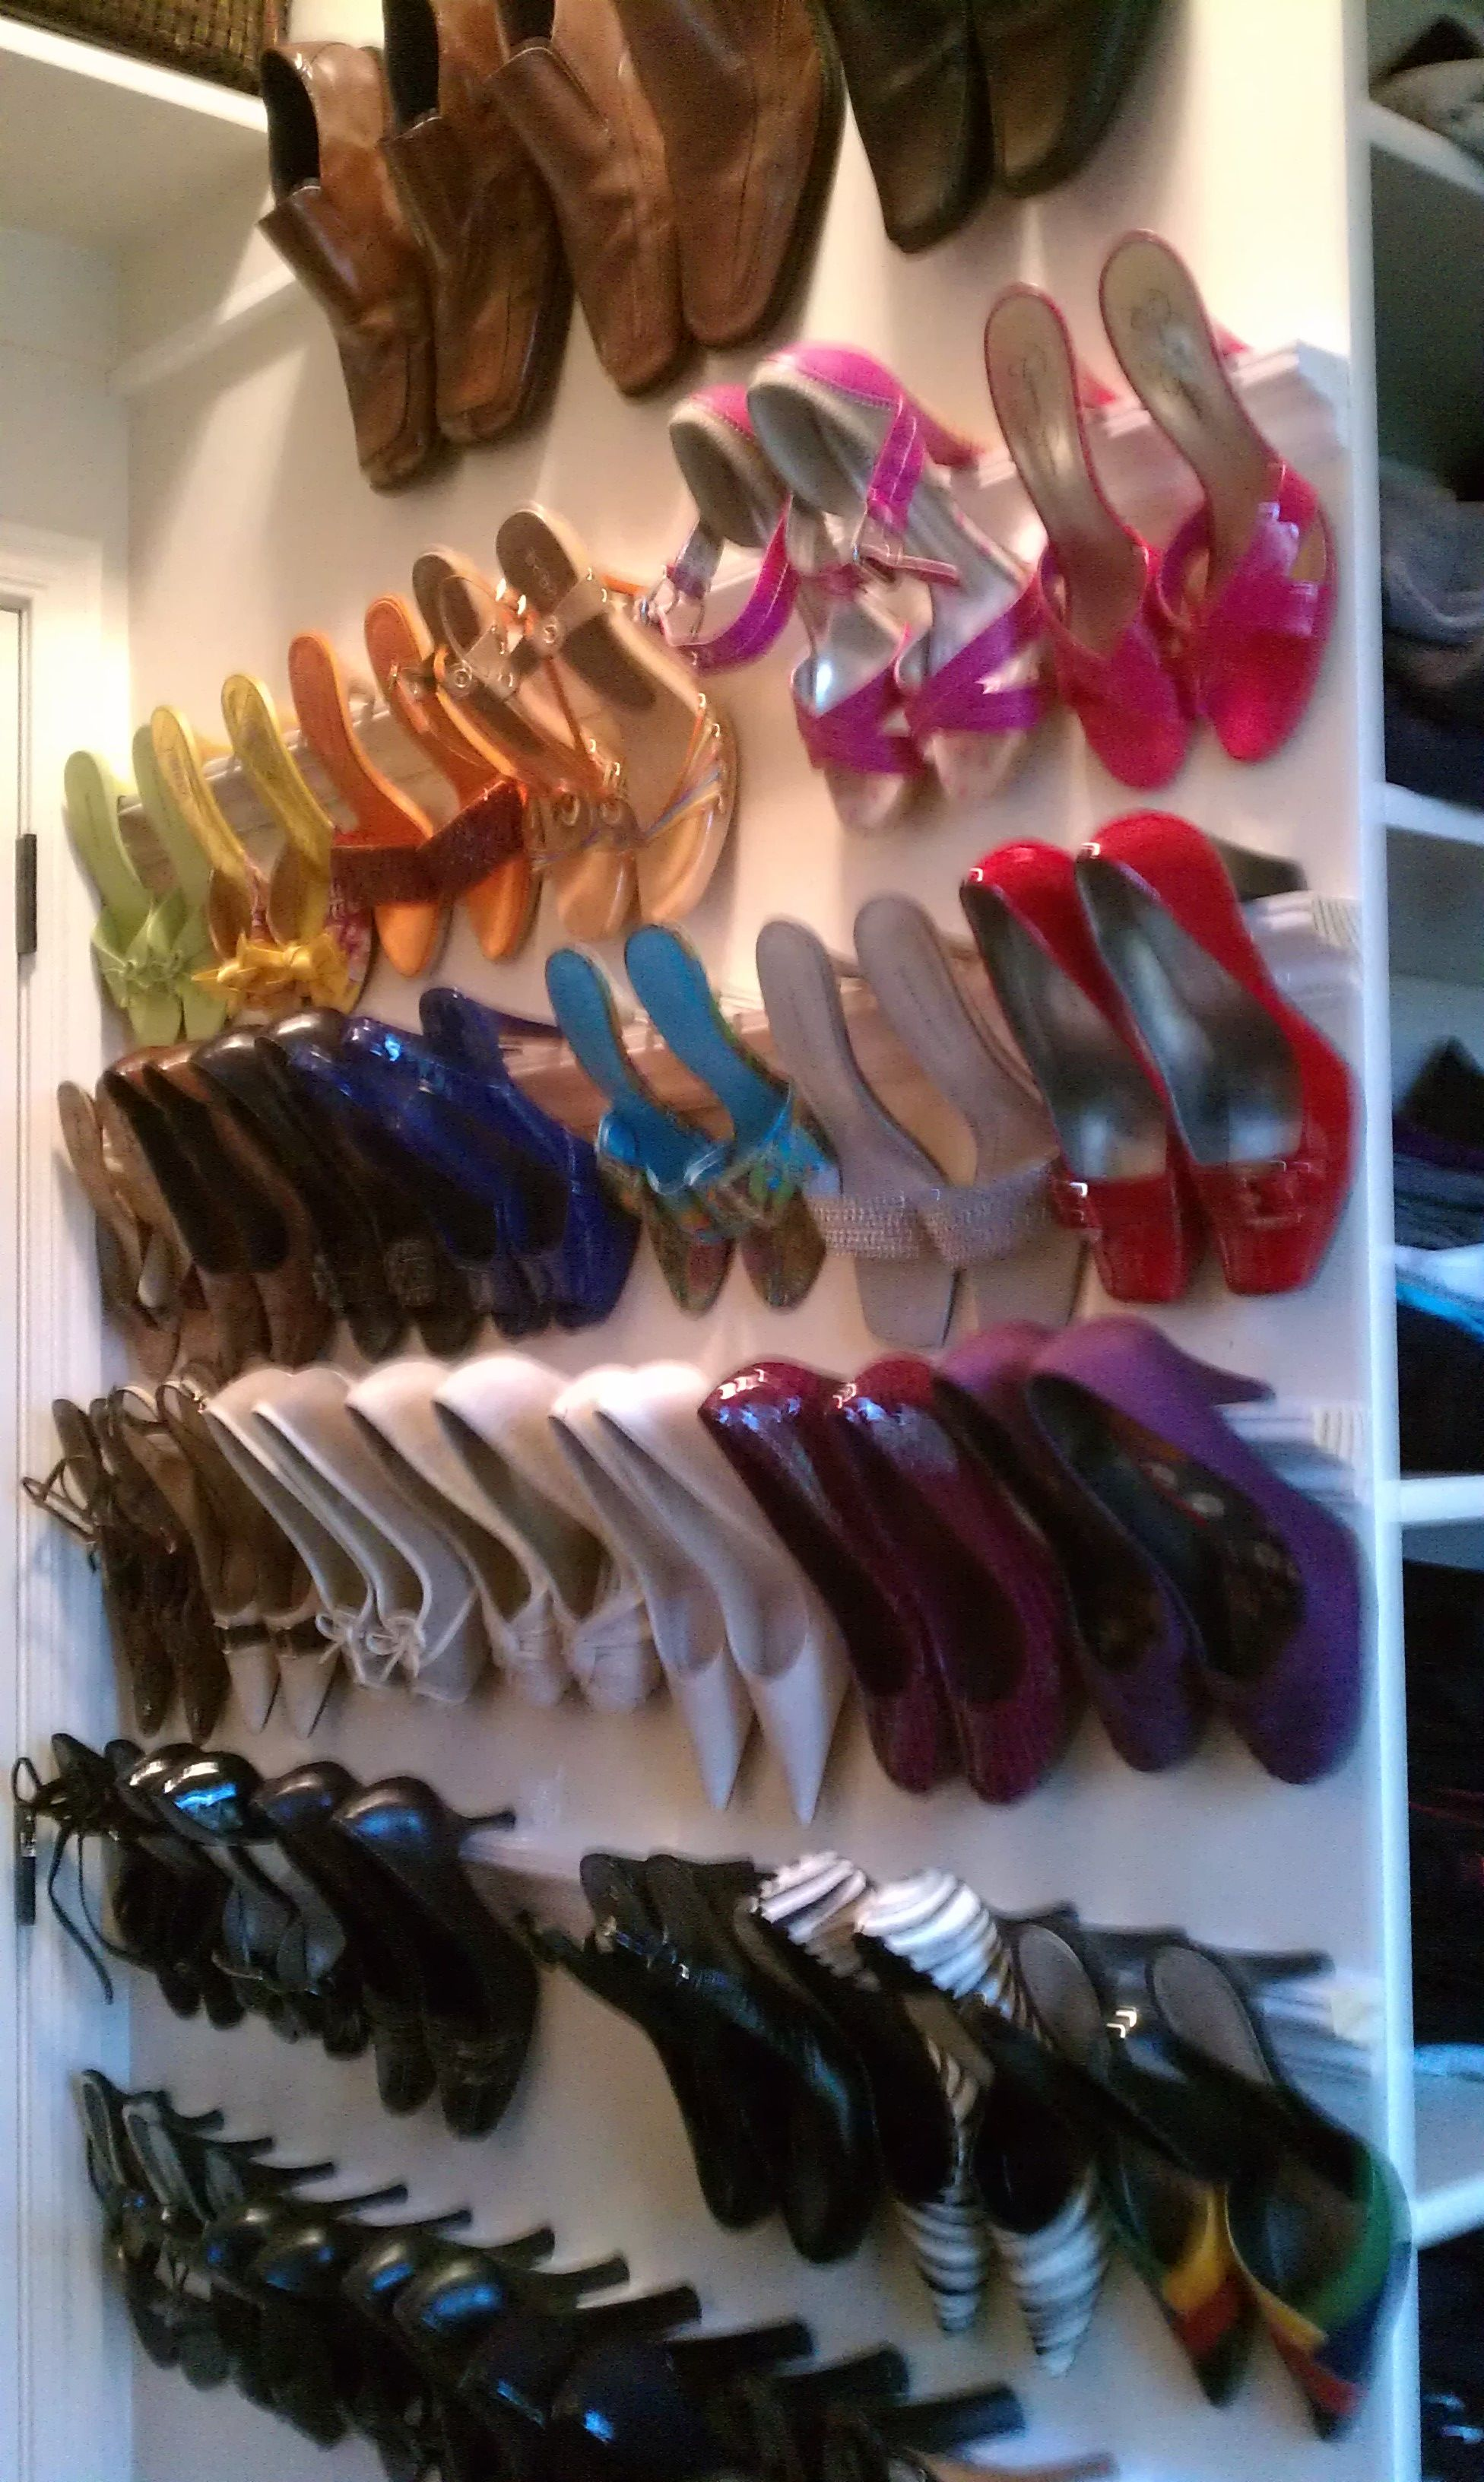 My Closet Crown Molding Cannot Take Credit Saw This On Pinterest Before I Joined And I Cannot Find The Ori Shoe Organization Closet Shoe Rack Shoe Organizer